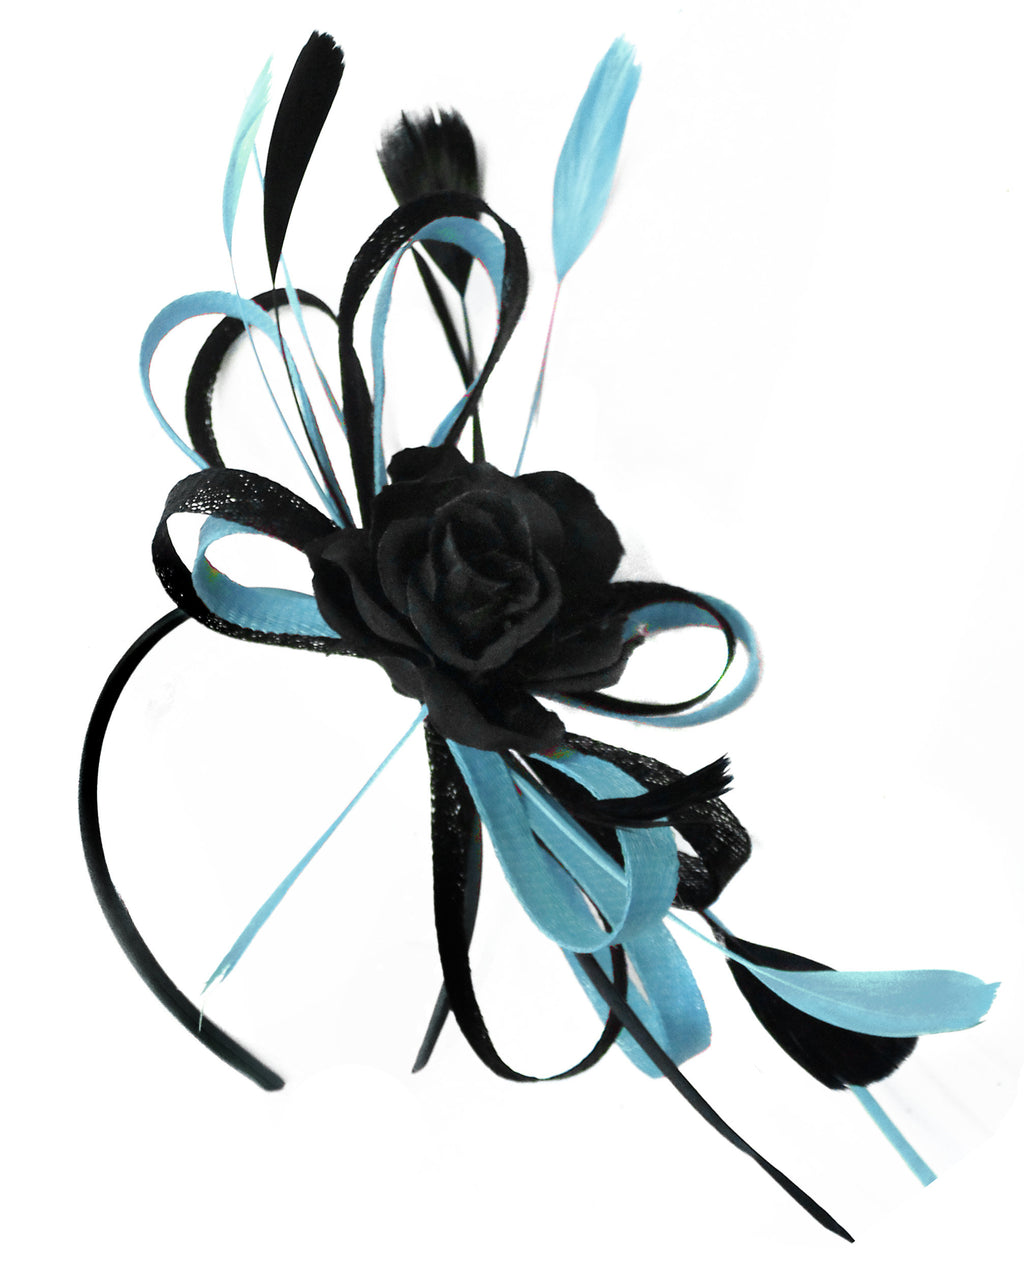 Caprilite Sinamay Rose Black and Light Blue Fascinator on Headband Alice Band UK Wedding Ascot Races Loop